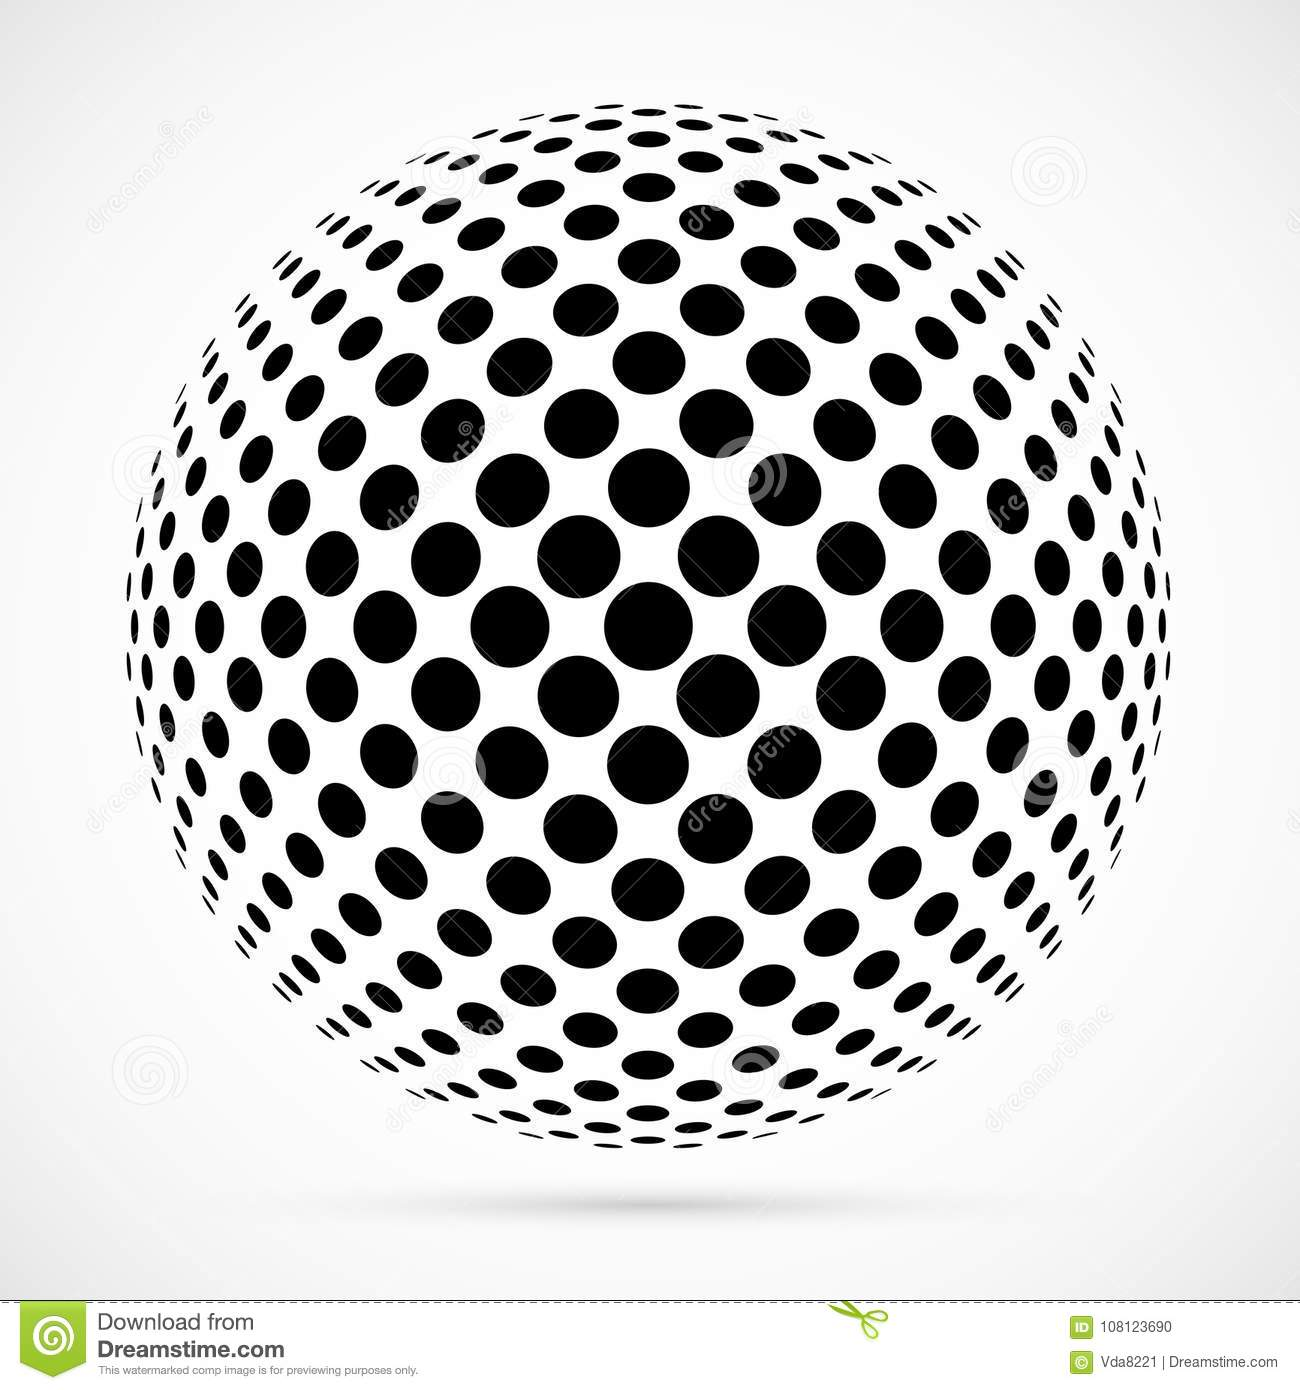 White 3D vector halftone sphere.Dotted spherical background.Logo template with shadow.Circle dots isolated on the white